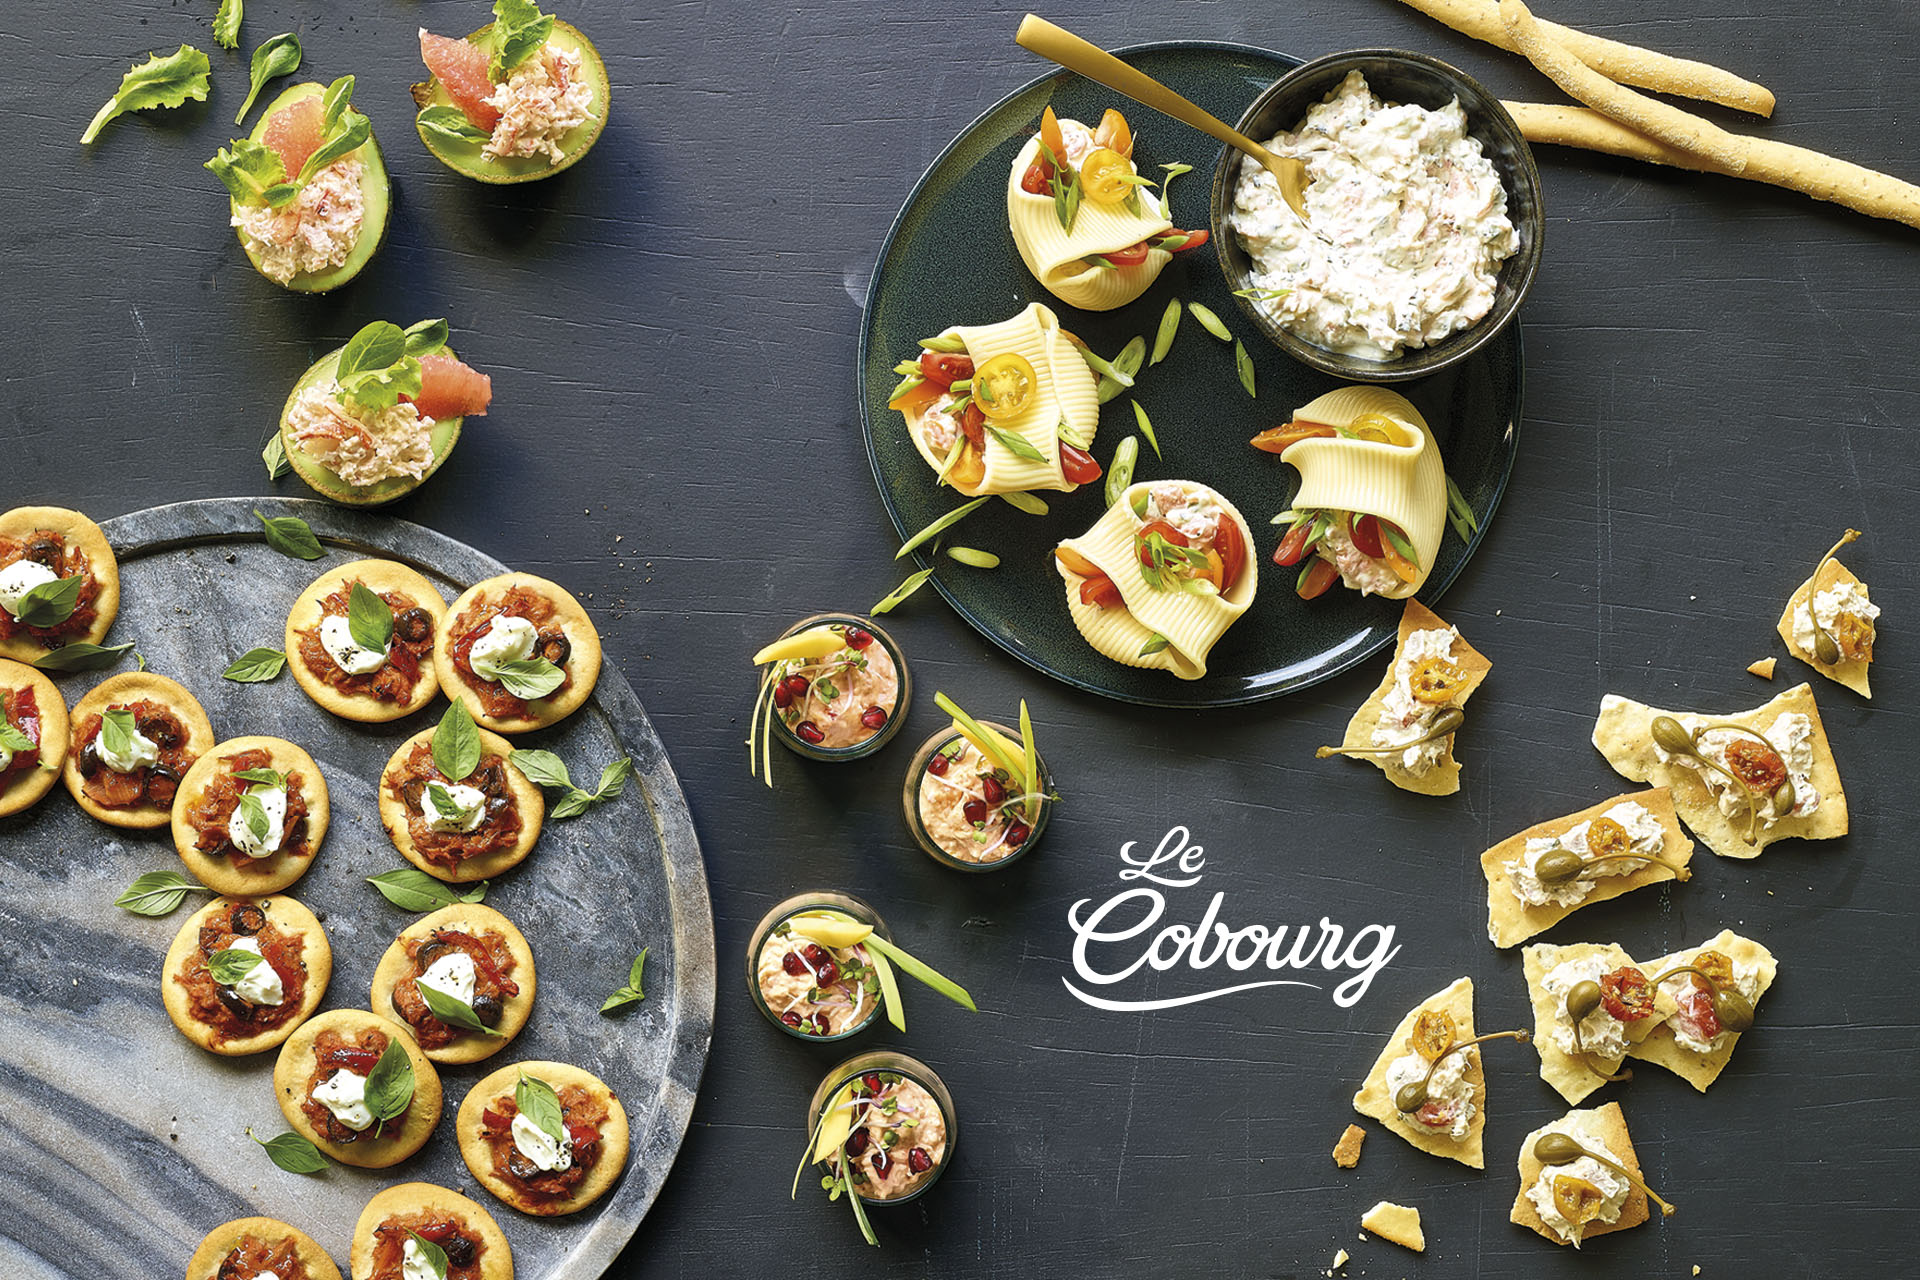 concept and food styling Le Cobourg by DesignRepublic